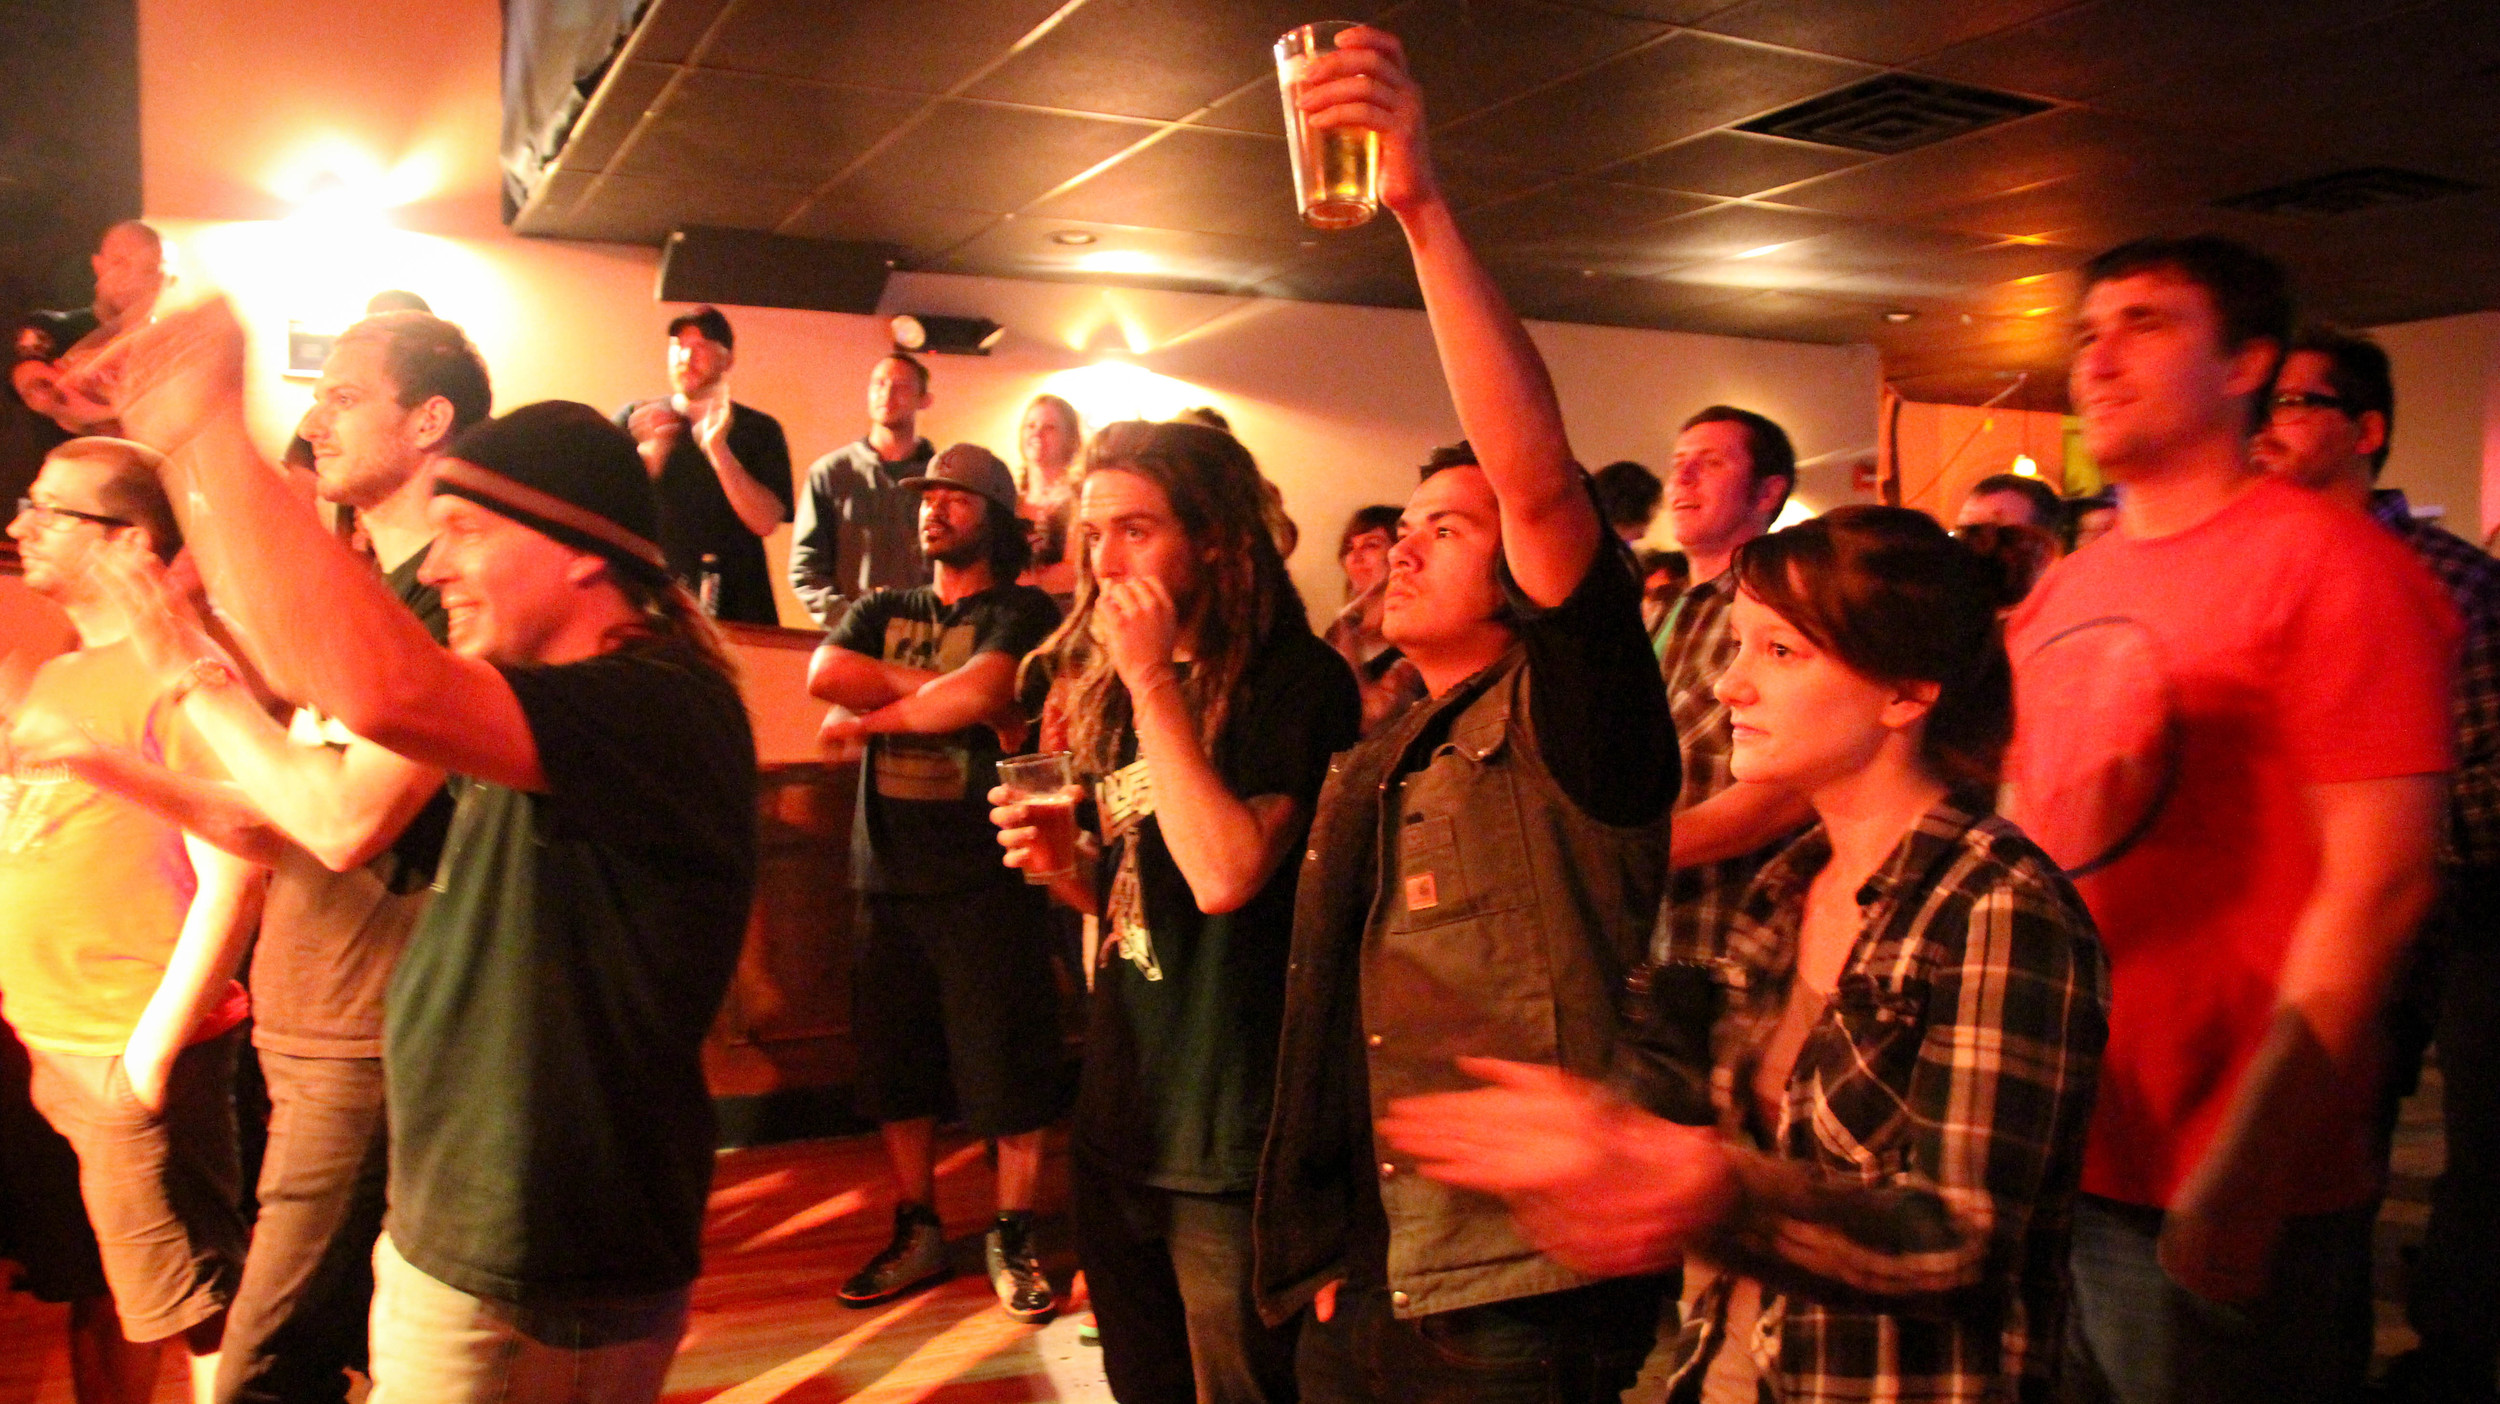 The enthusiastic crowd at Food Fight, Battle of the Bands